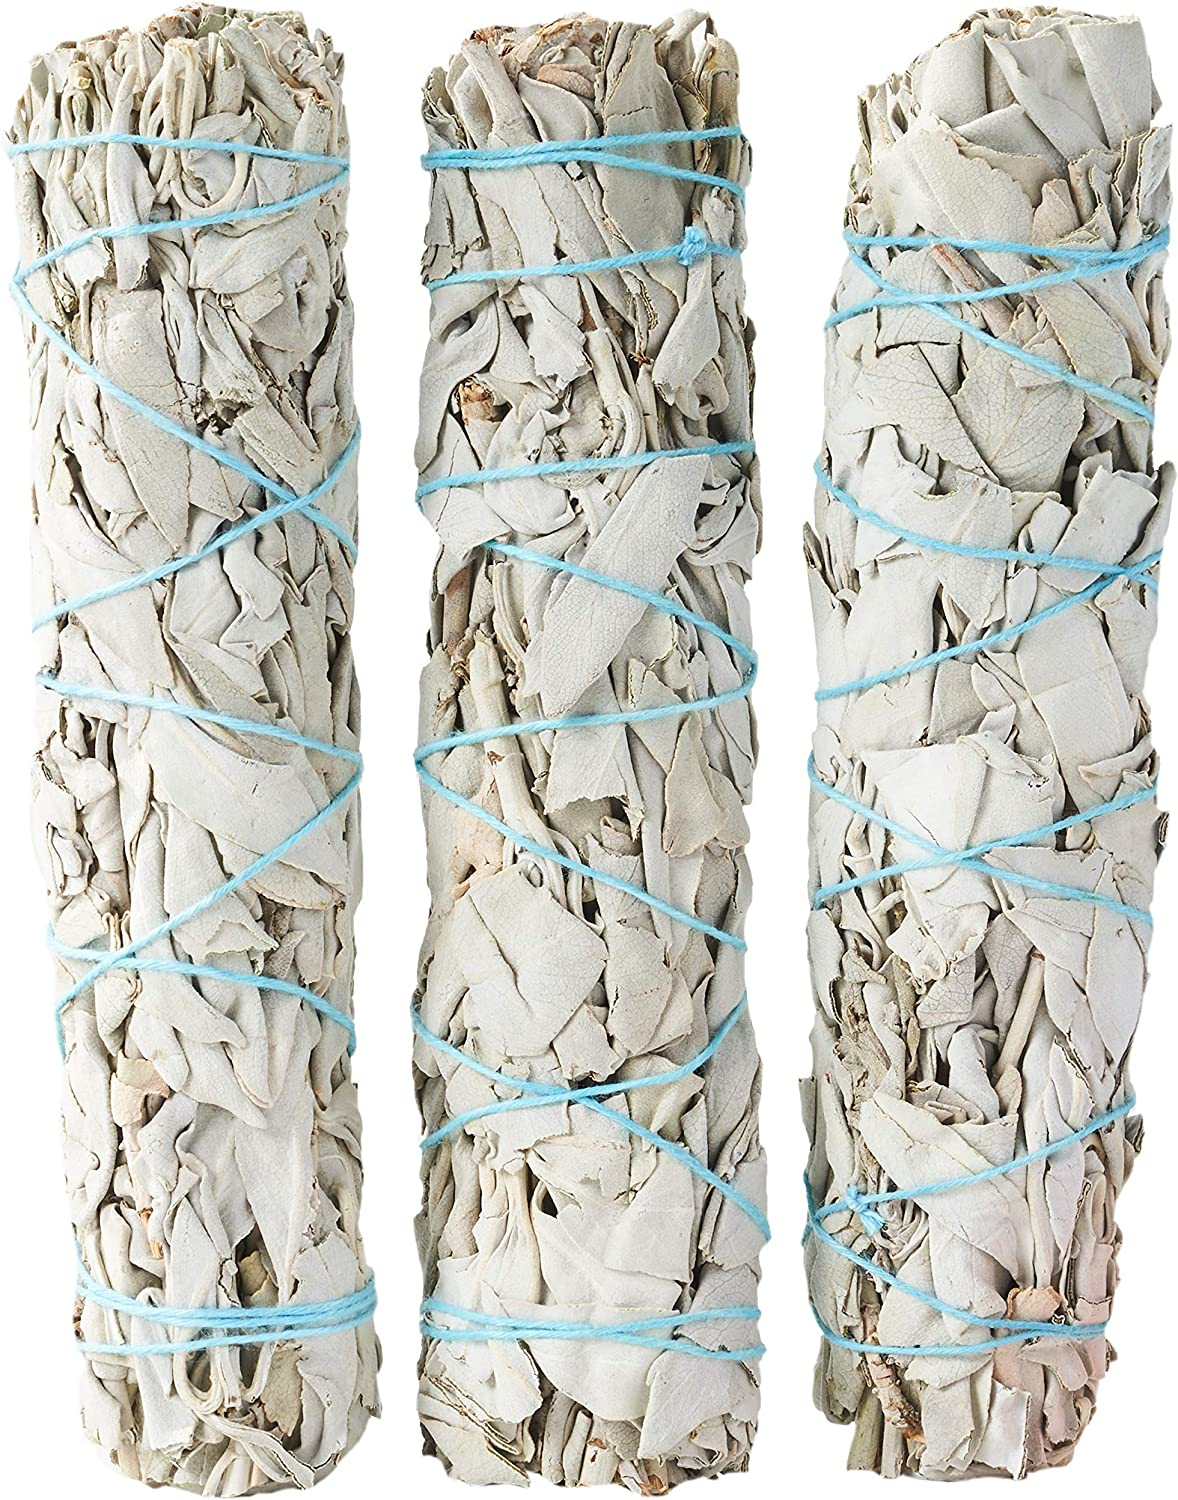 6-Inch Medium - Large White Sage Smudge Sticks ~ Sustainably Harvested ~ for Cleansing & Smudging with Instructions (3 Pack)